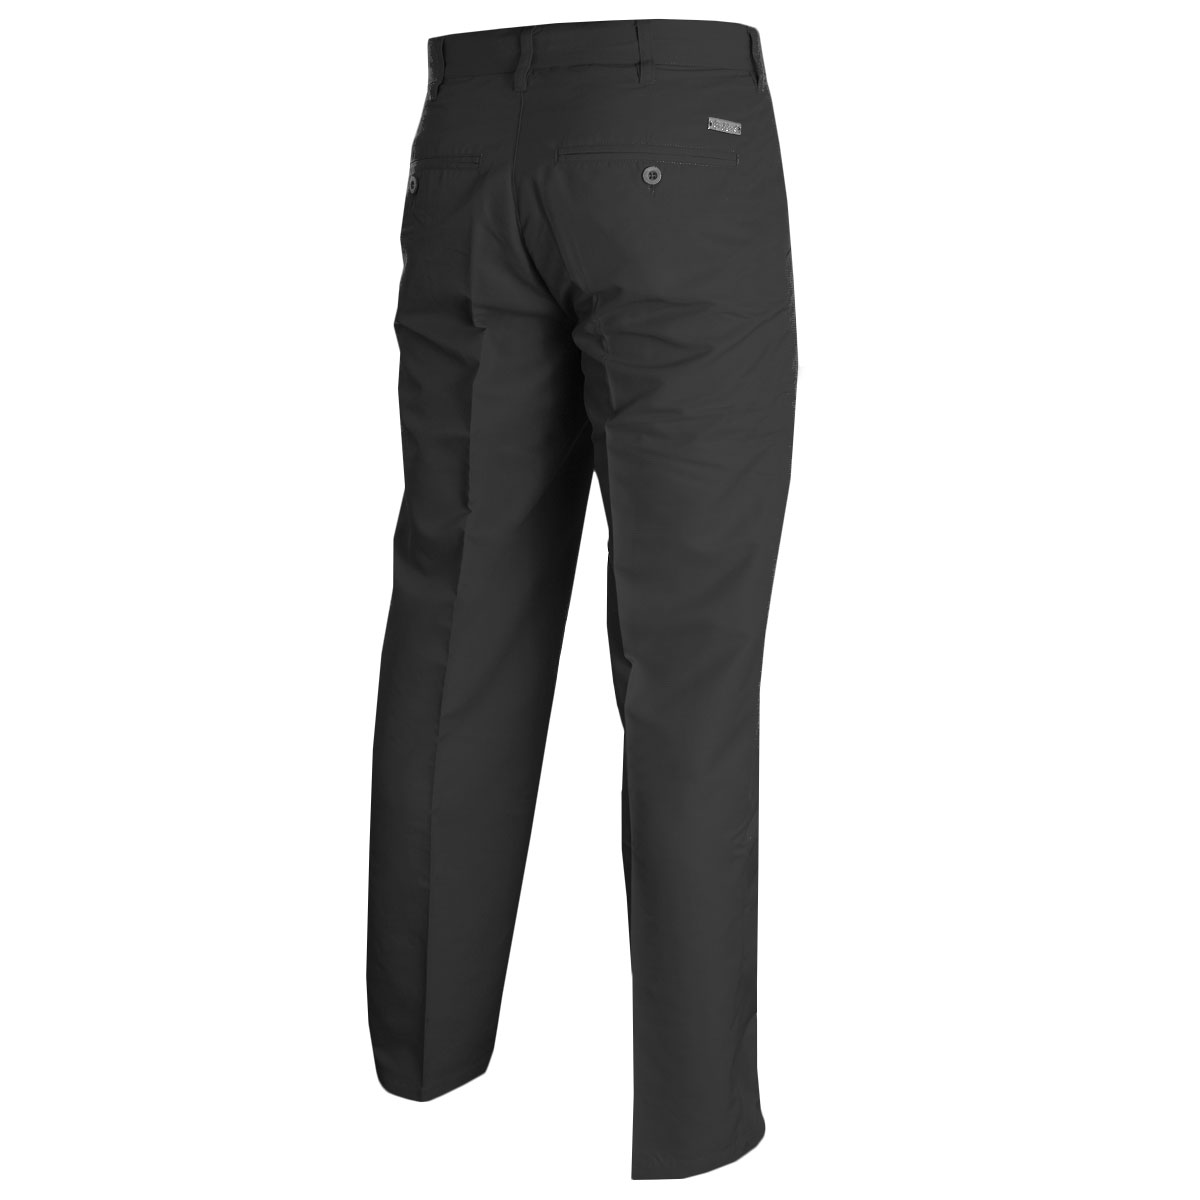 Island-Green-Mens-Tour-Golf-Trousers-Performance-Pant-57-OFF-RRP thumbnail 3